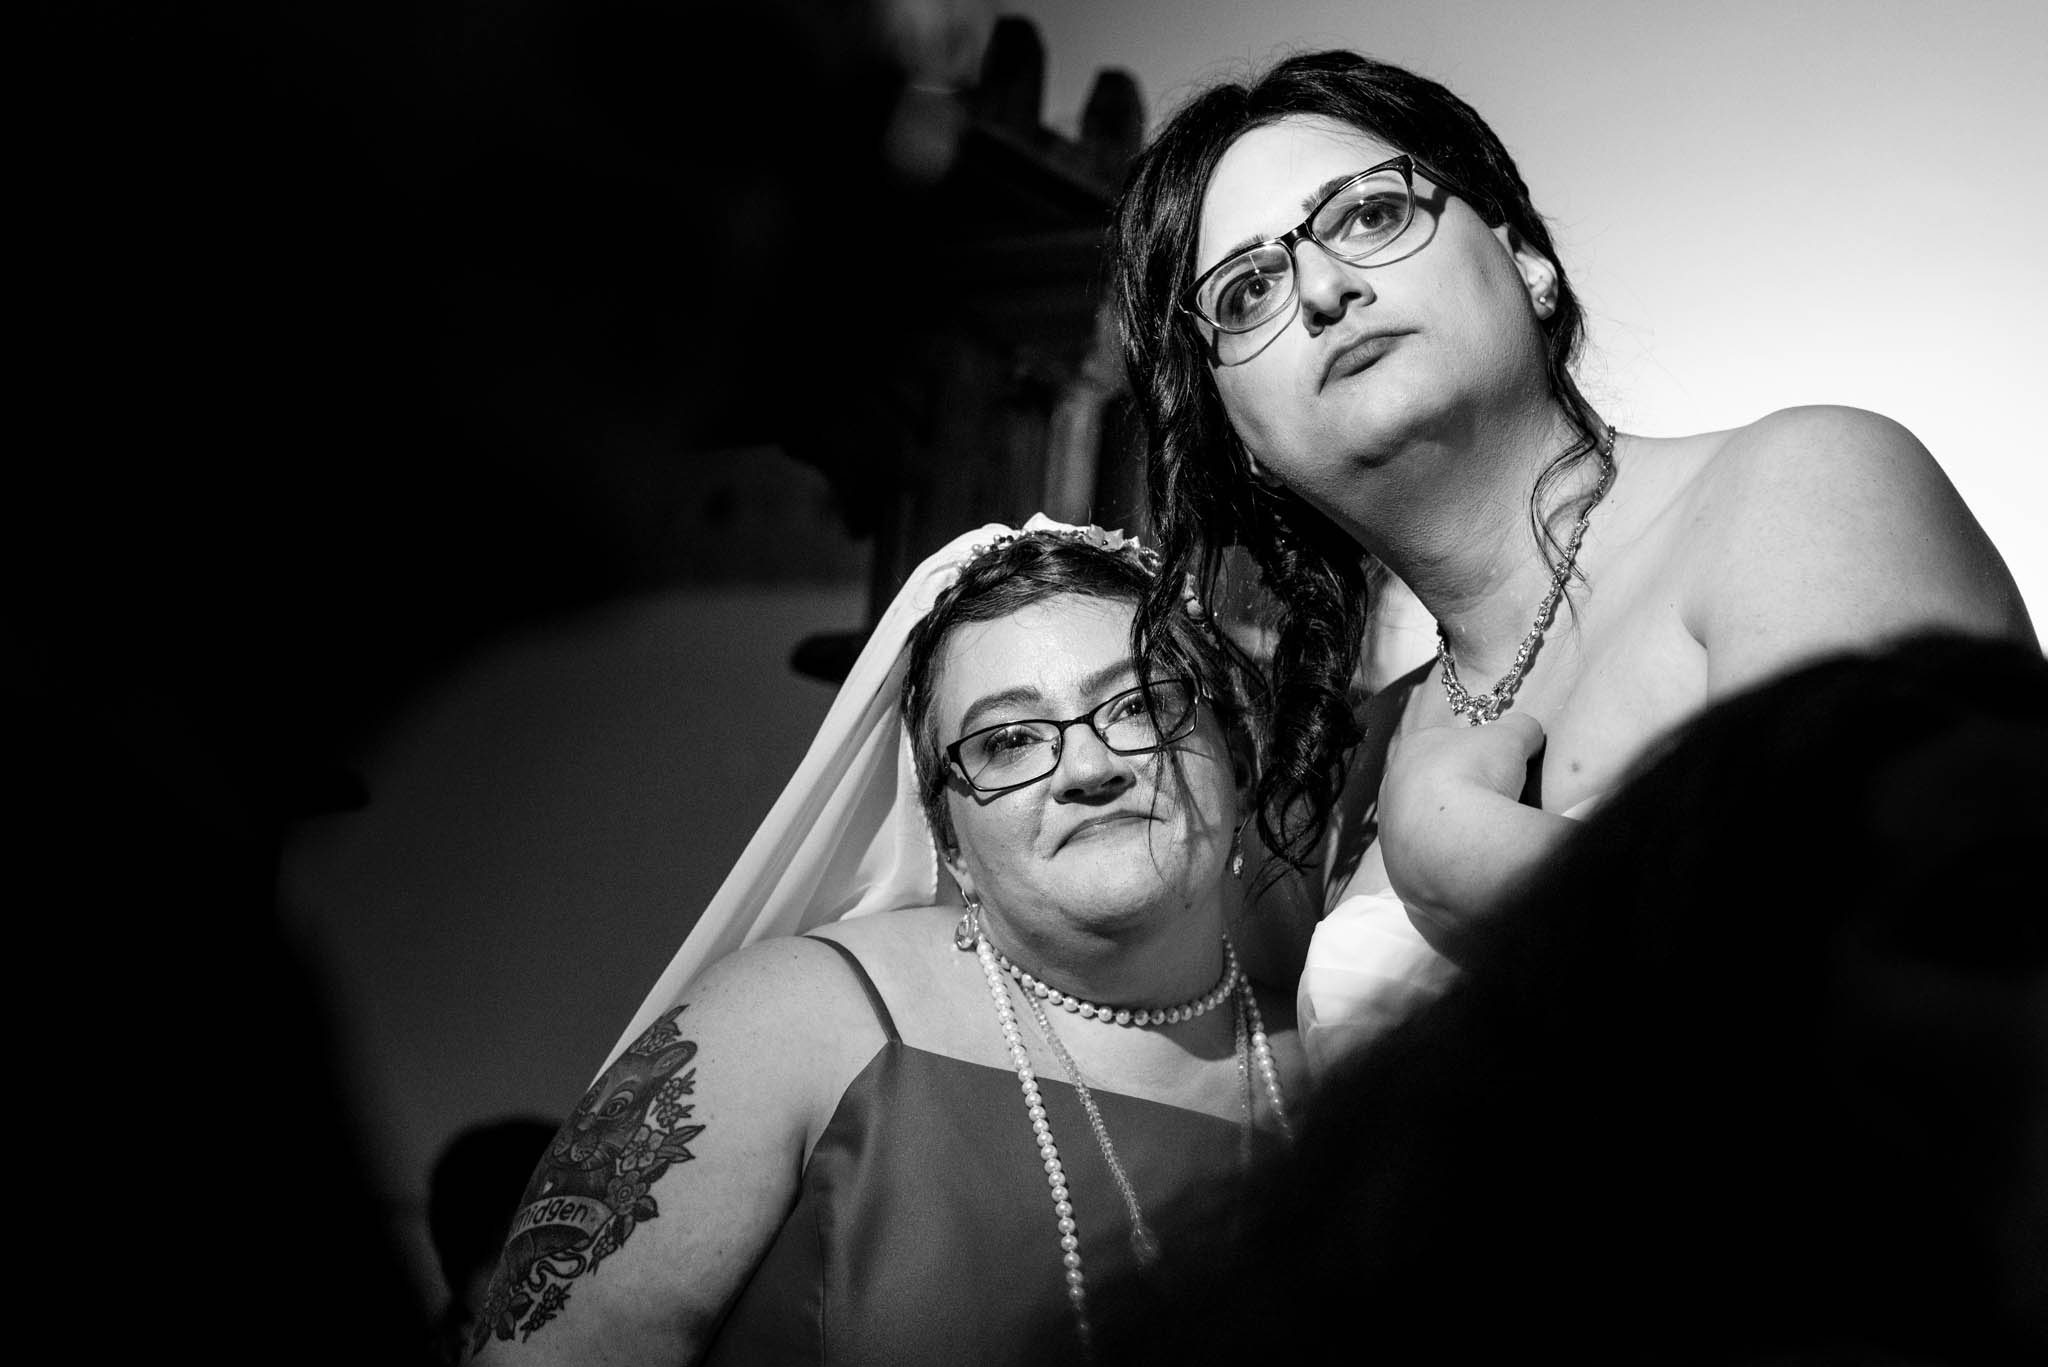 Photograph of two brides during wedding reception